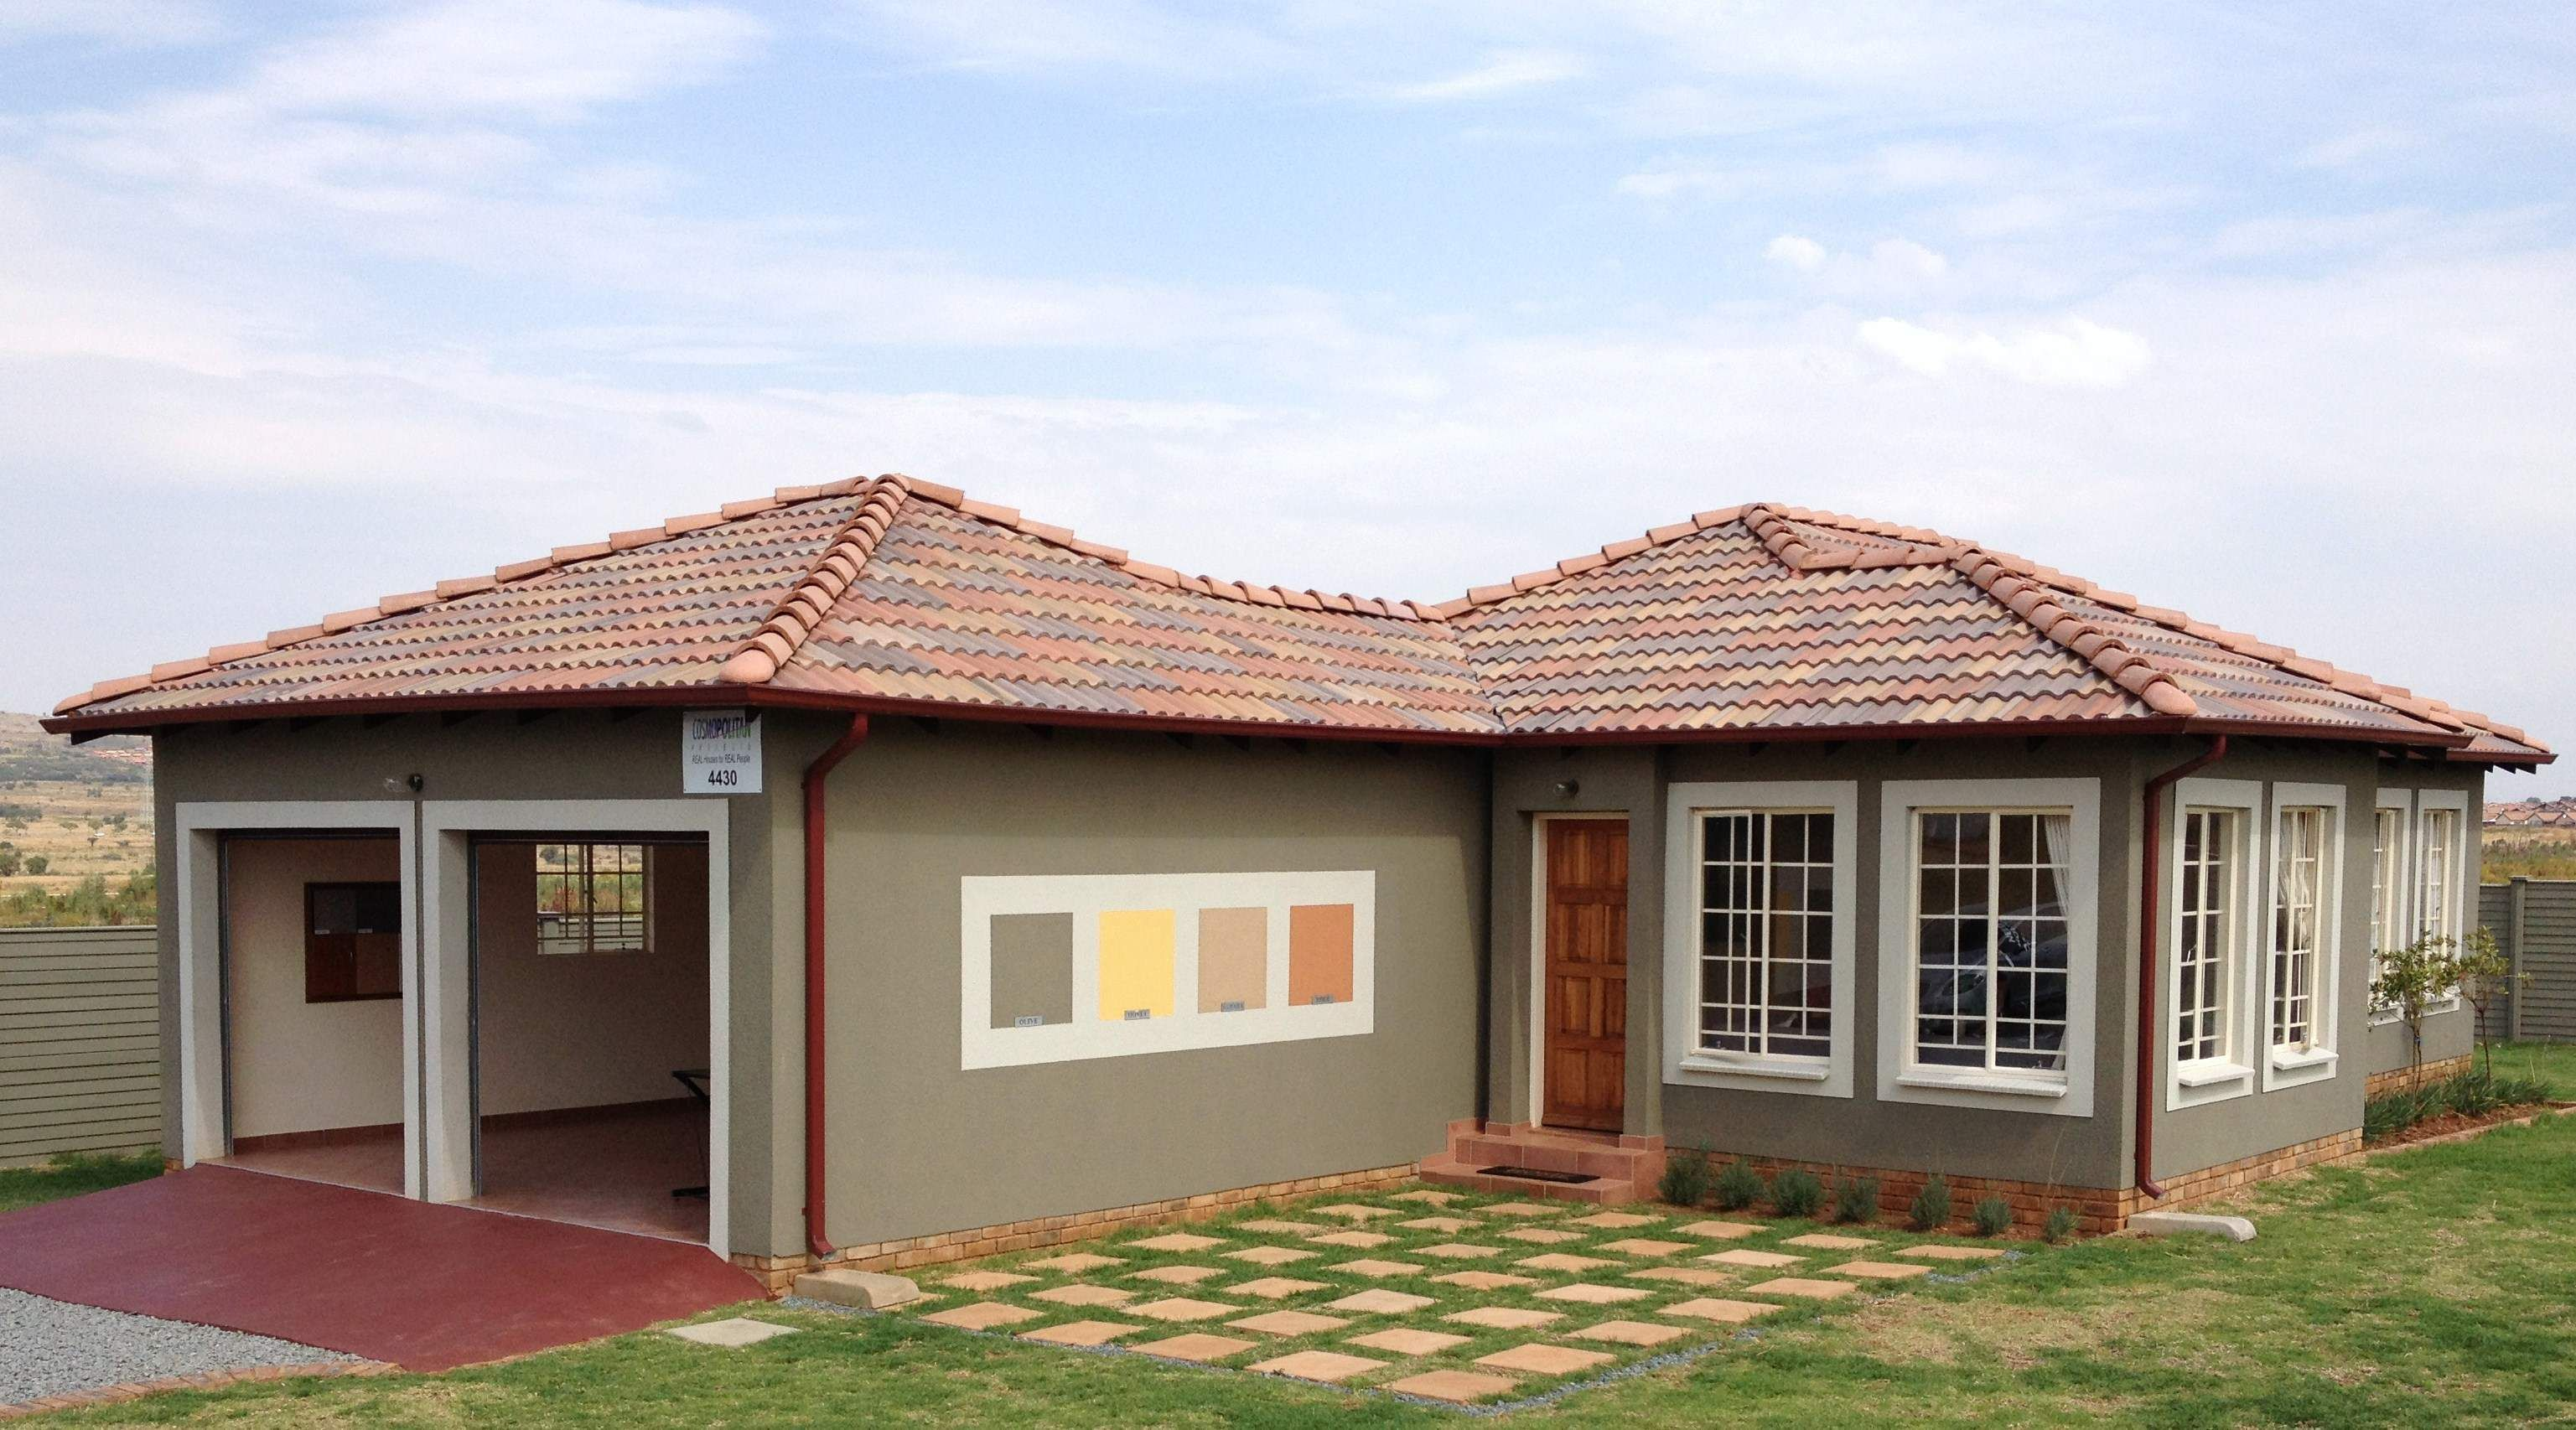 The tuscan house plans designs south africa modern tuscan for Office design zimbabwe